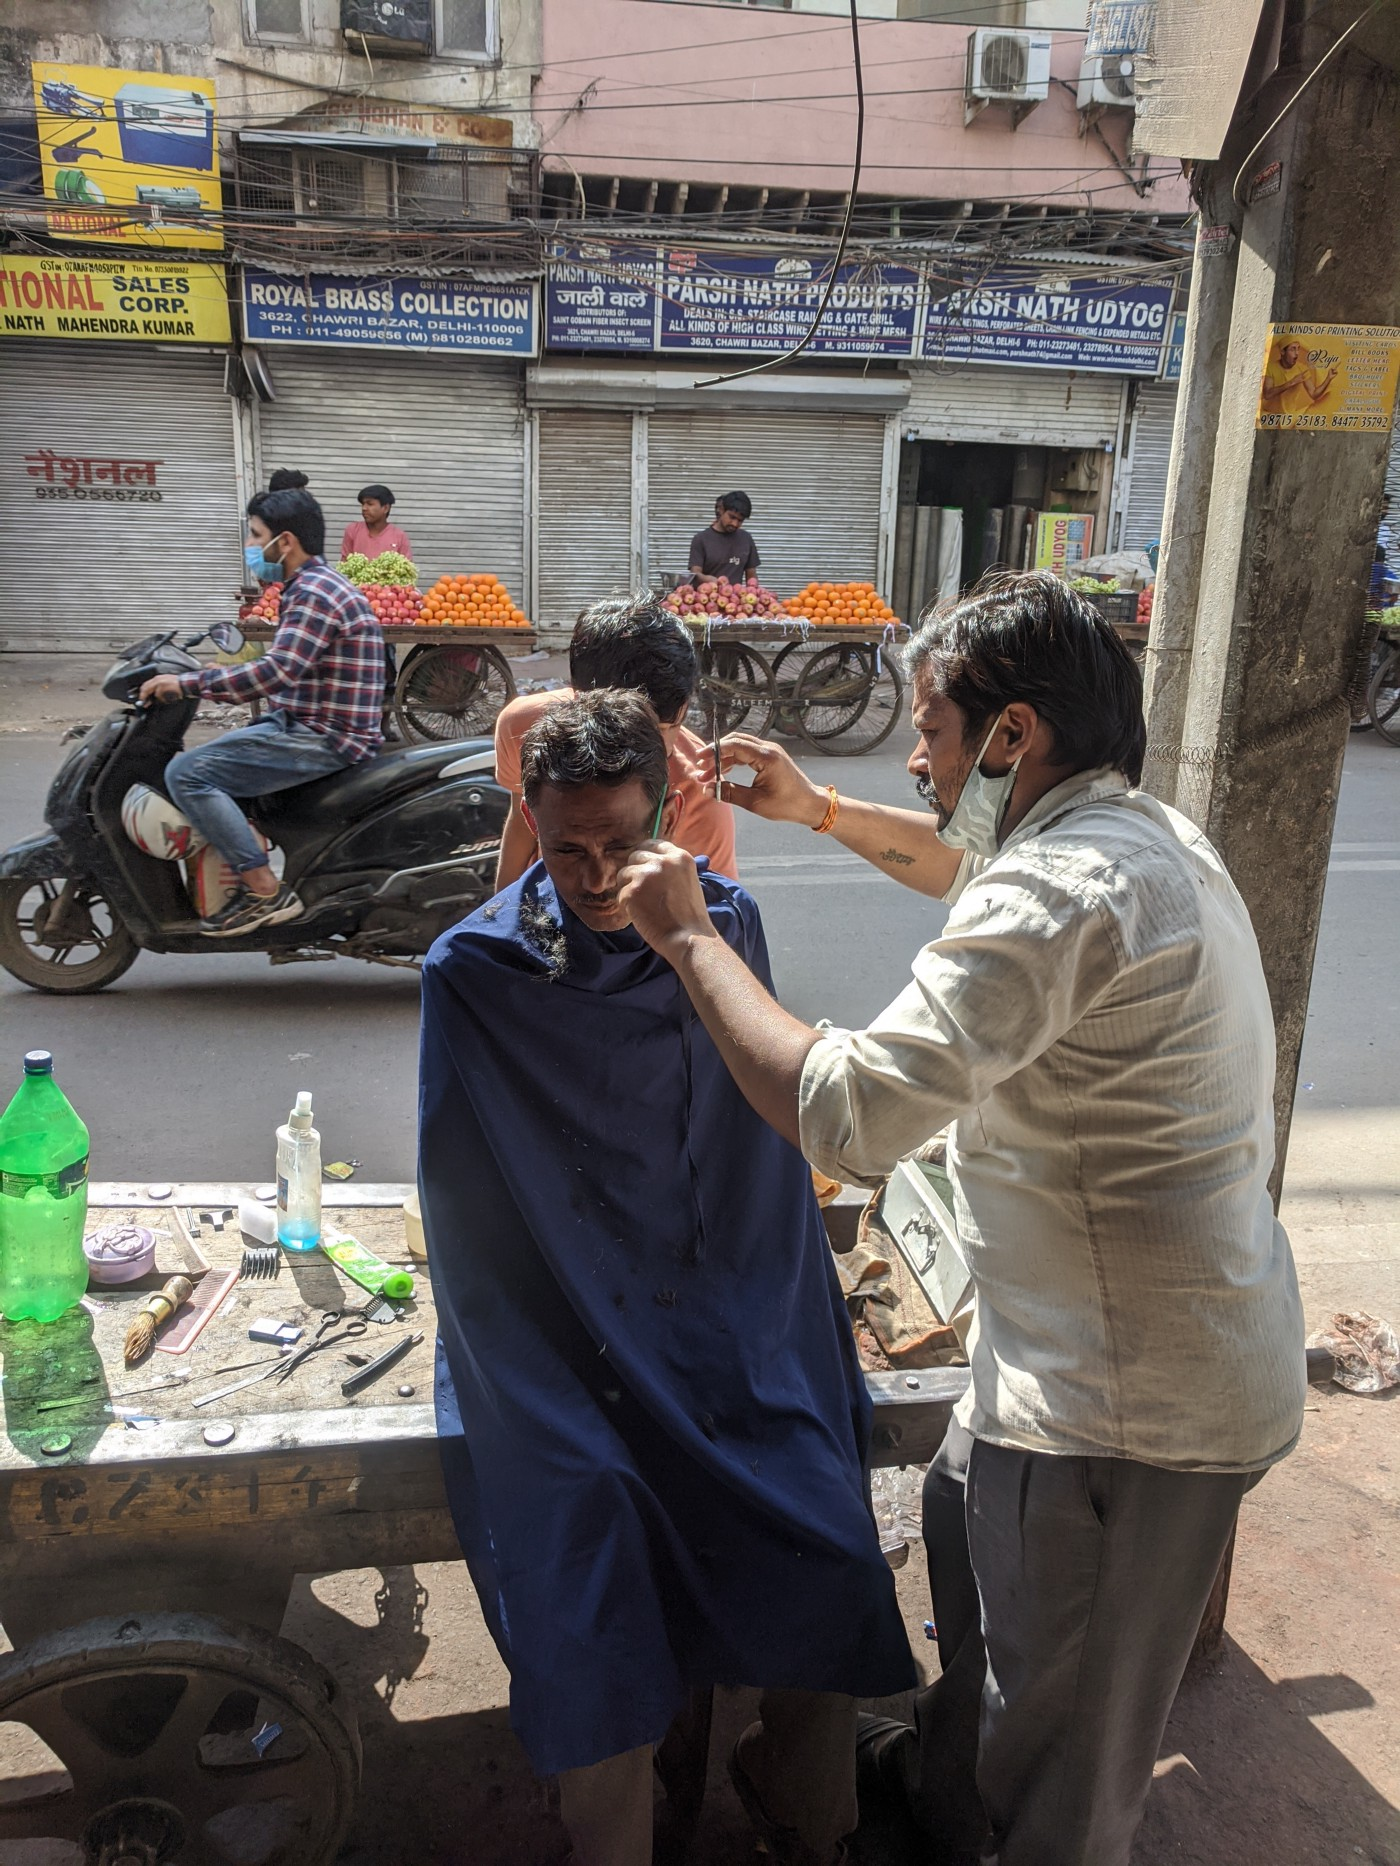 Barber cutting hair in middle of the road in Old Delhi